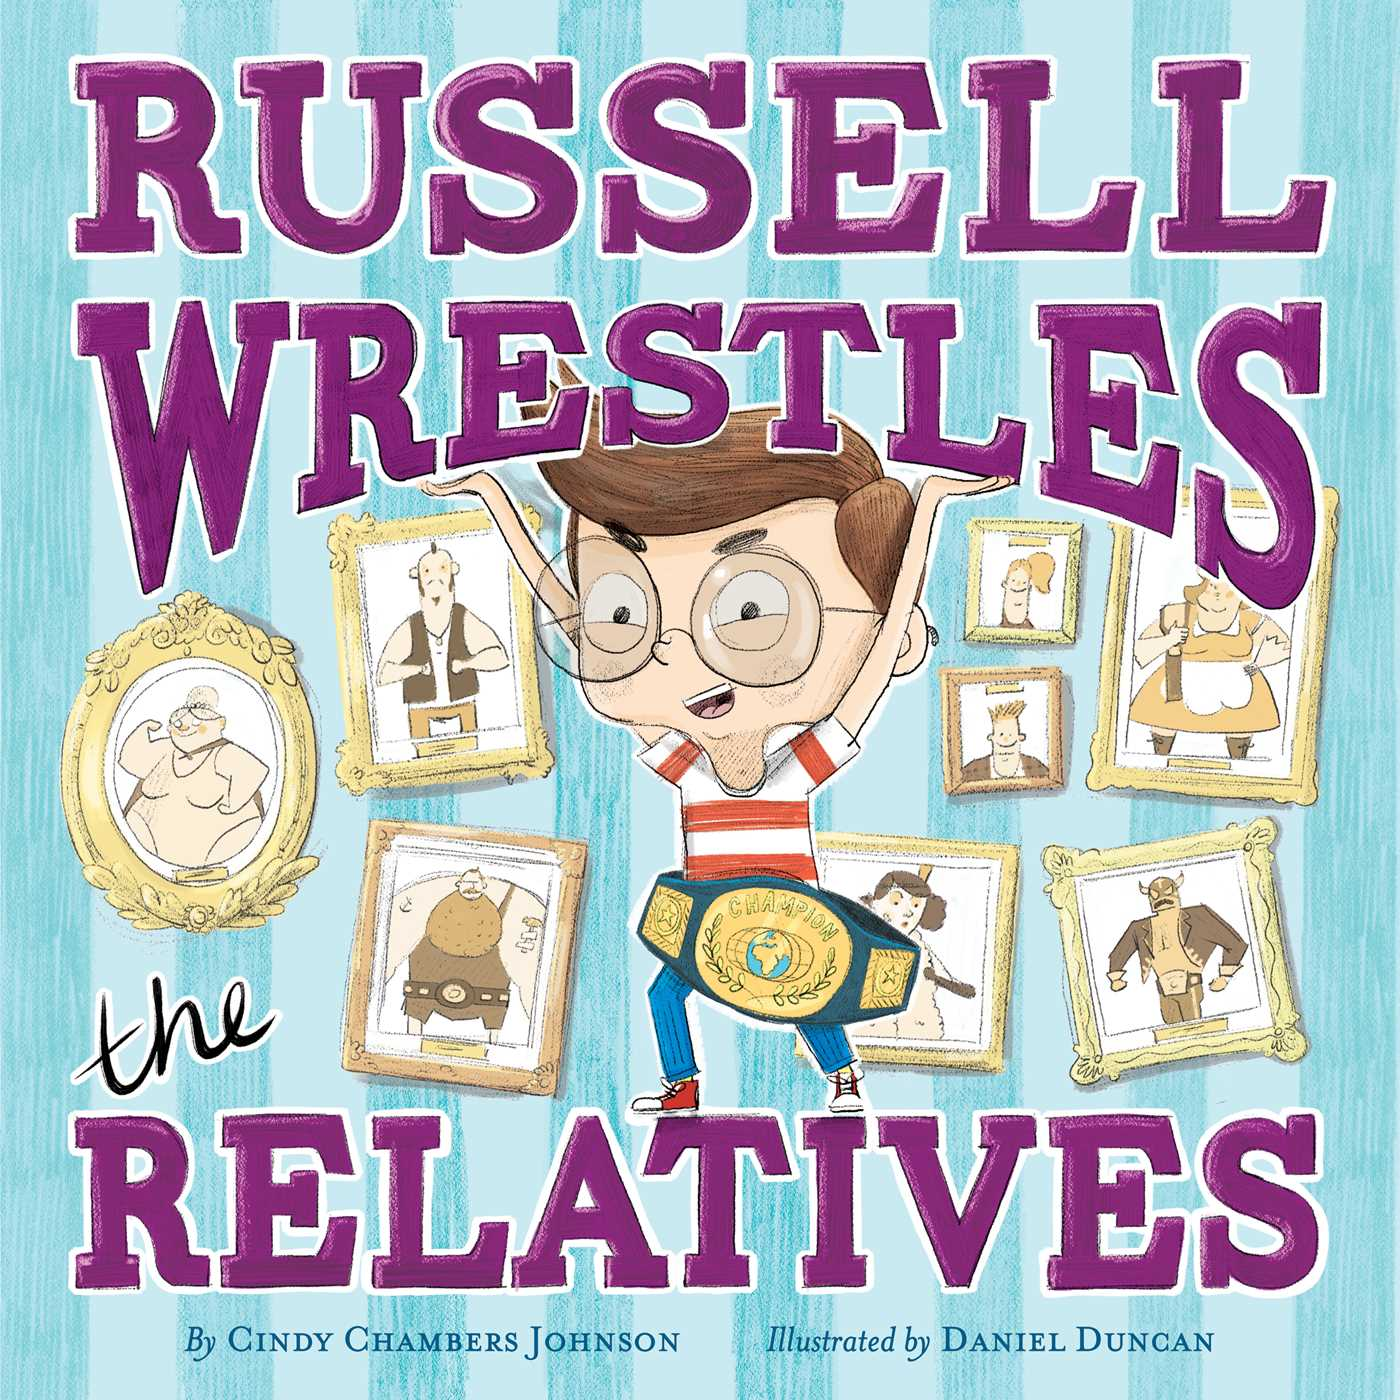 Russell wrestles the relatives 9781481491594 hr